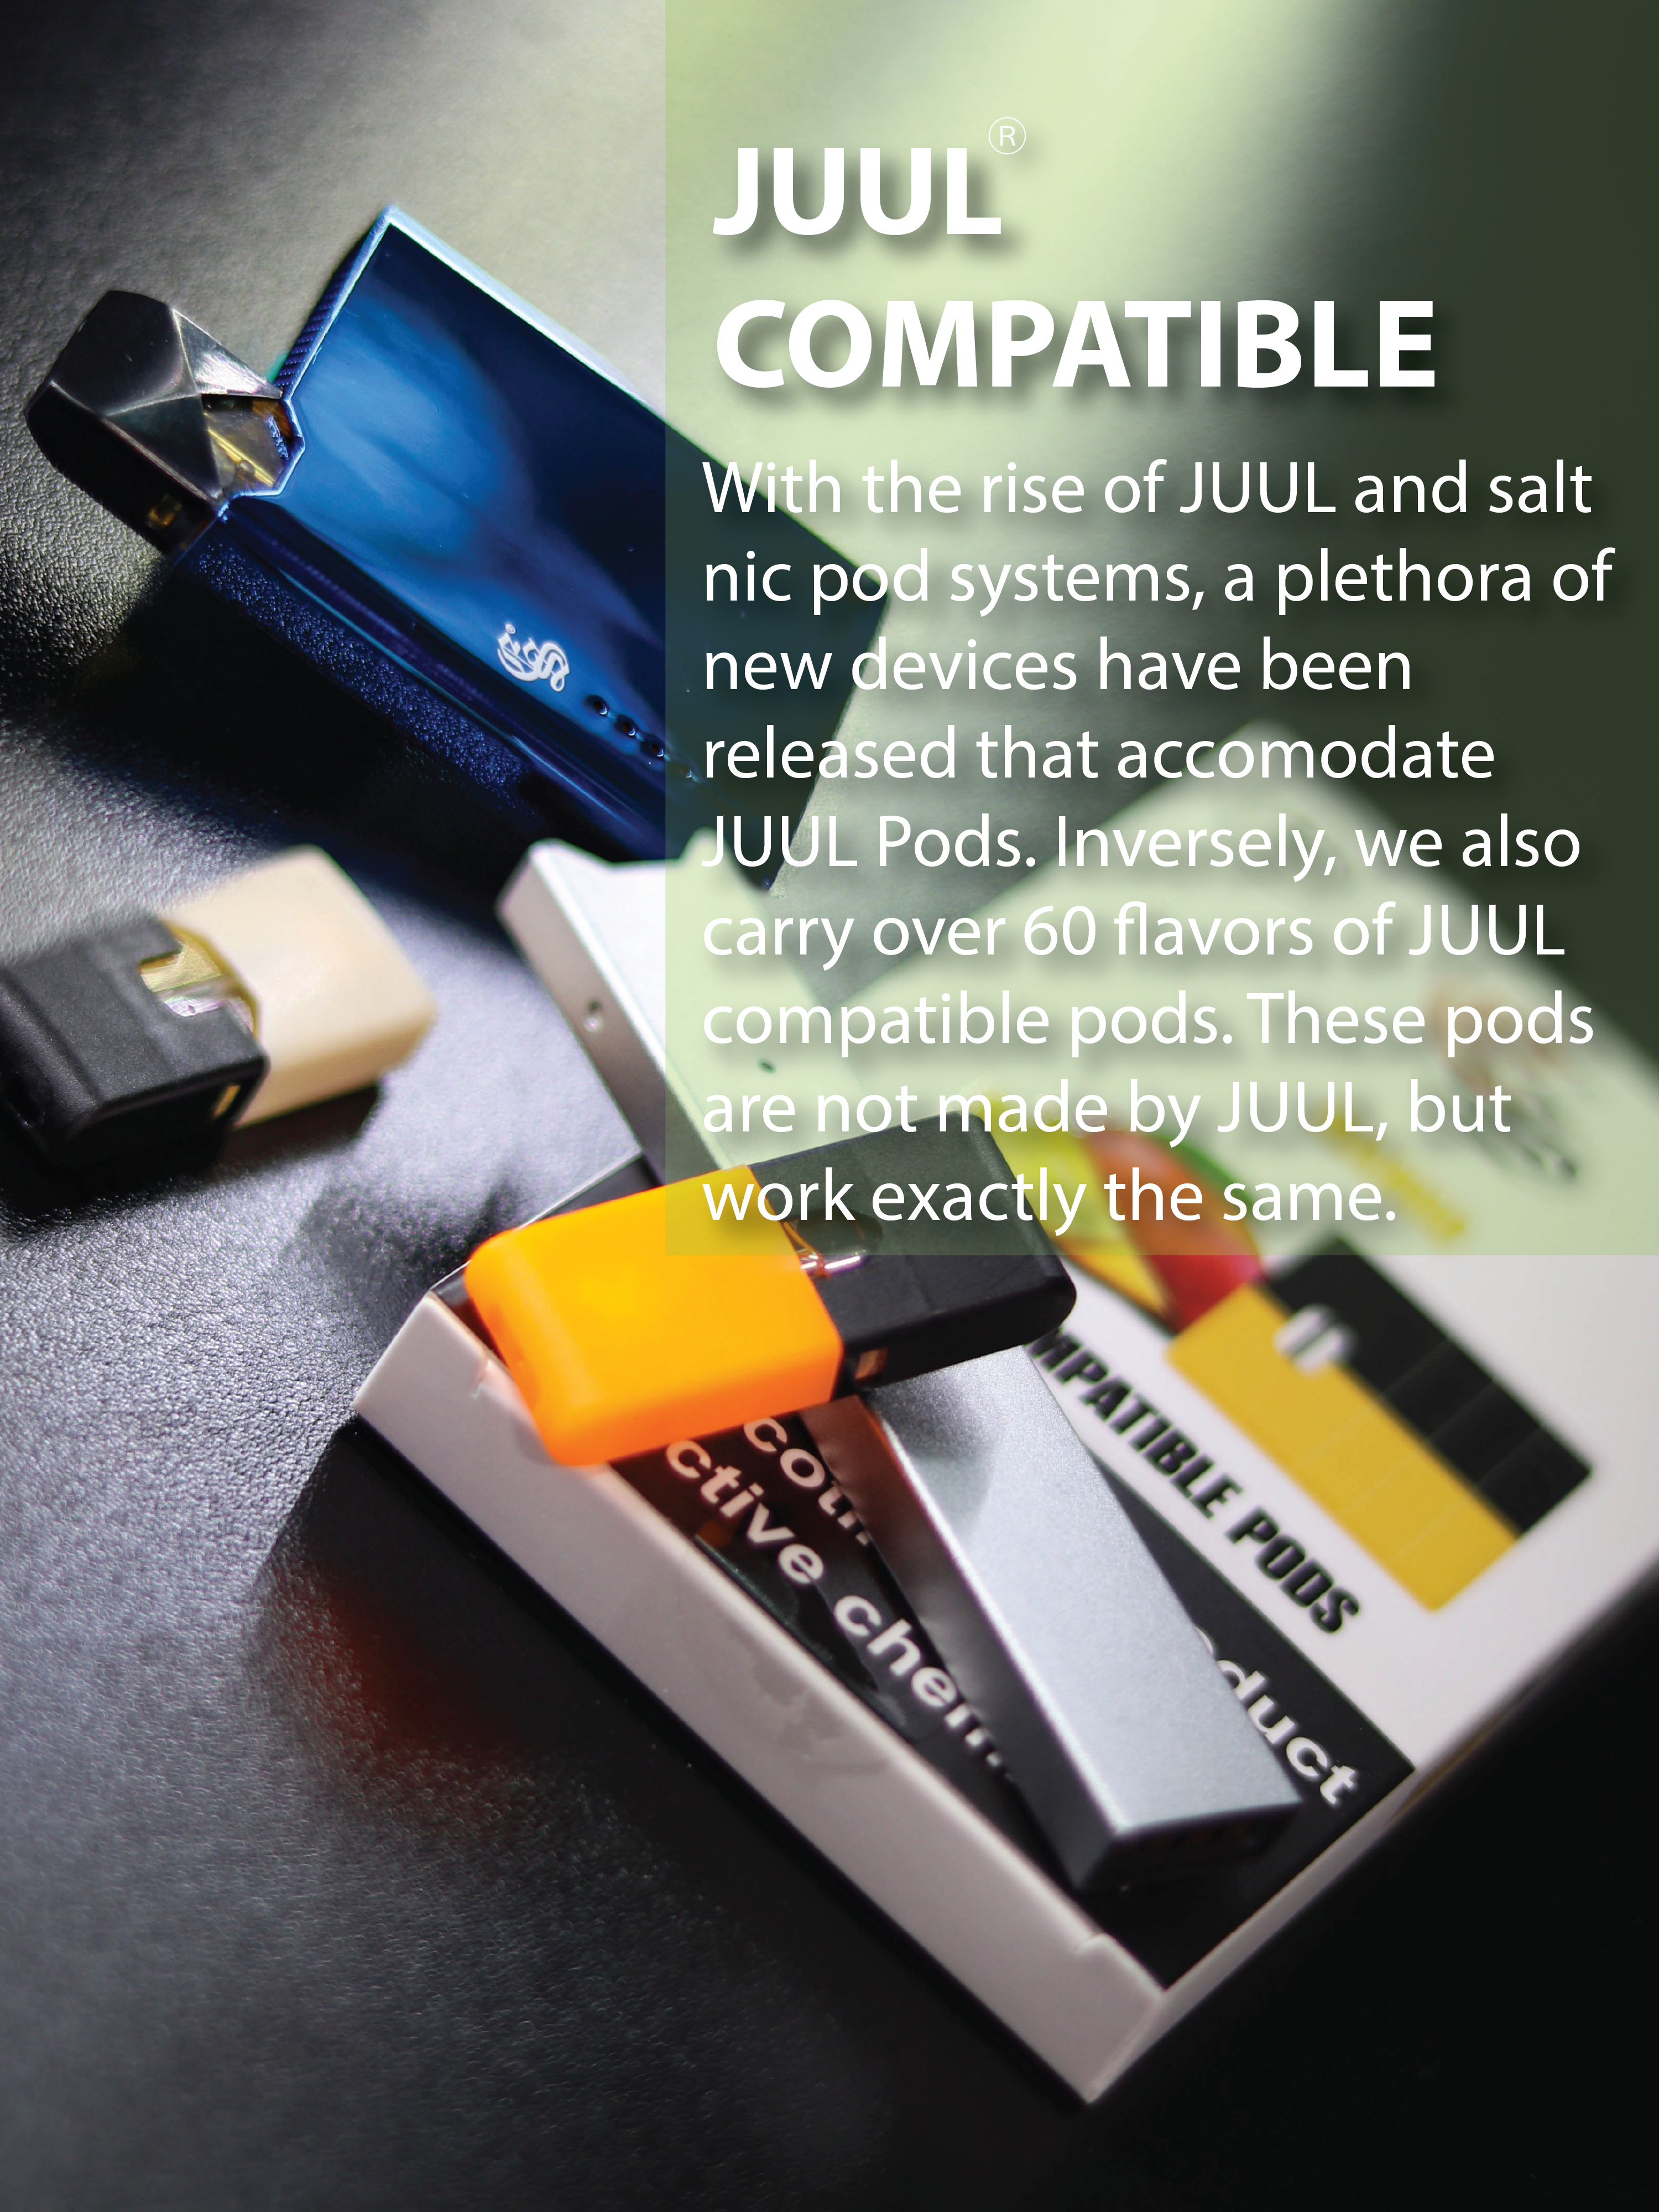 JUUL compatible. With the rise of JUUL and salt nicotine pod systems, a plethora of new devices have been released that accommodate JUUL pods. Inversely, we also carry over 60 flavors of JUUL compatible pods. These pods are not made by JUUL, but work exactly the same.